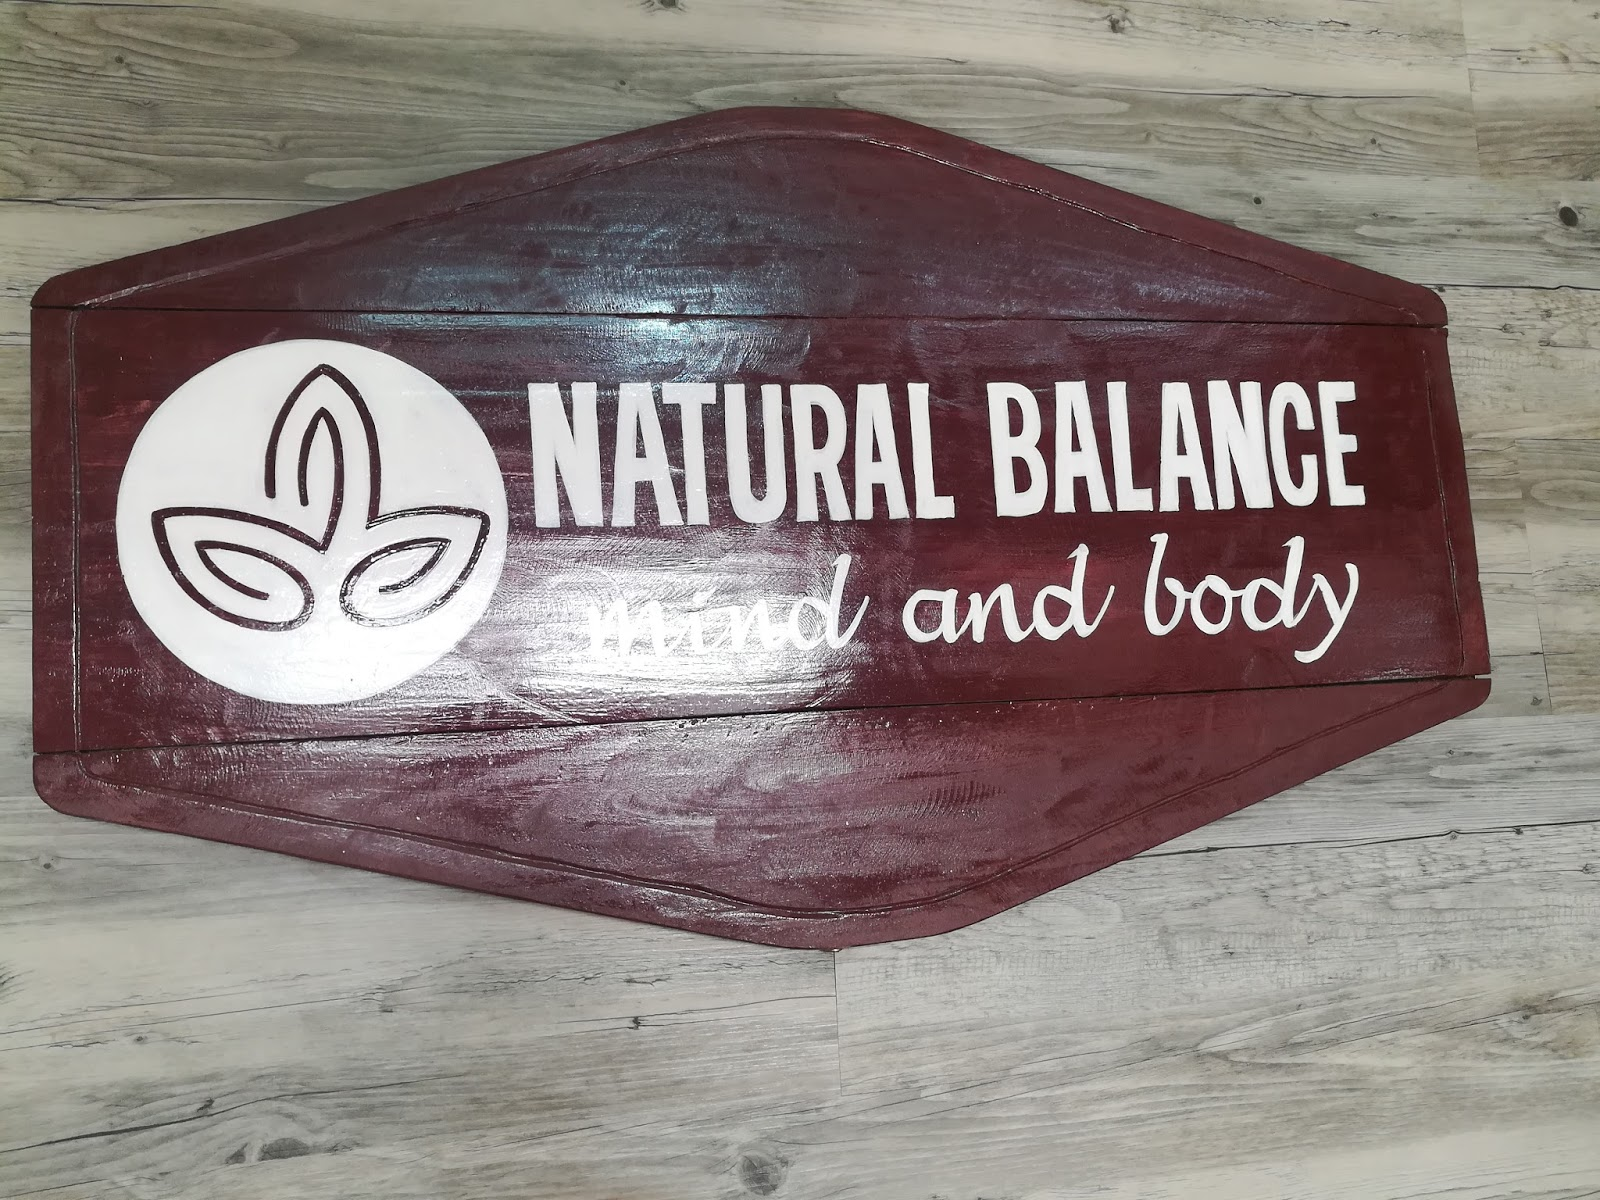 Care health herbal manufacturer product - Natural Balance Uses Only The Finest Natural Ingredients In Their Products And Use Locally Grown Sourced Natural Plant Extracts And Oils Such As Elemi